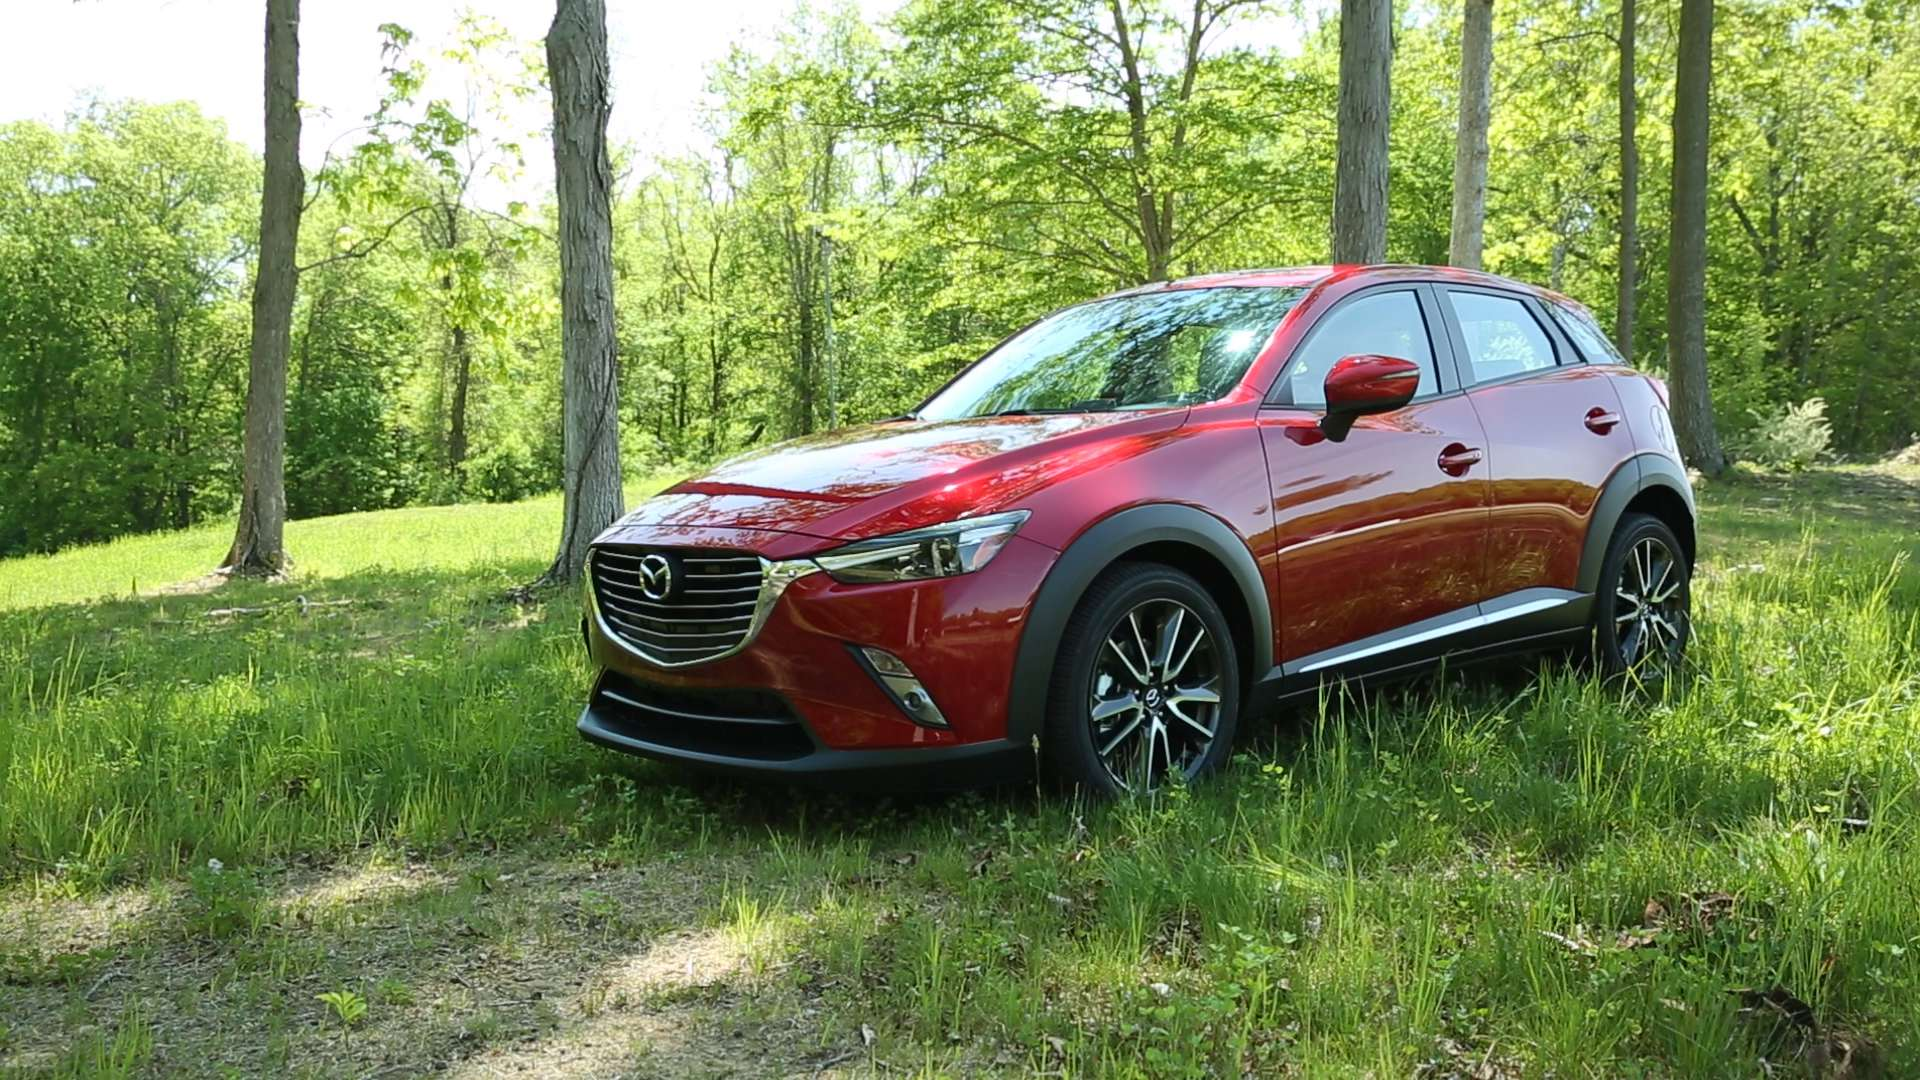 2016 mazda cx 3 review consumer reports. Black Bedroom Furniture Sets. Home Design Ideas